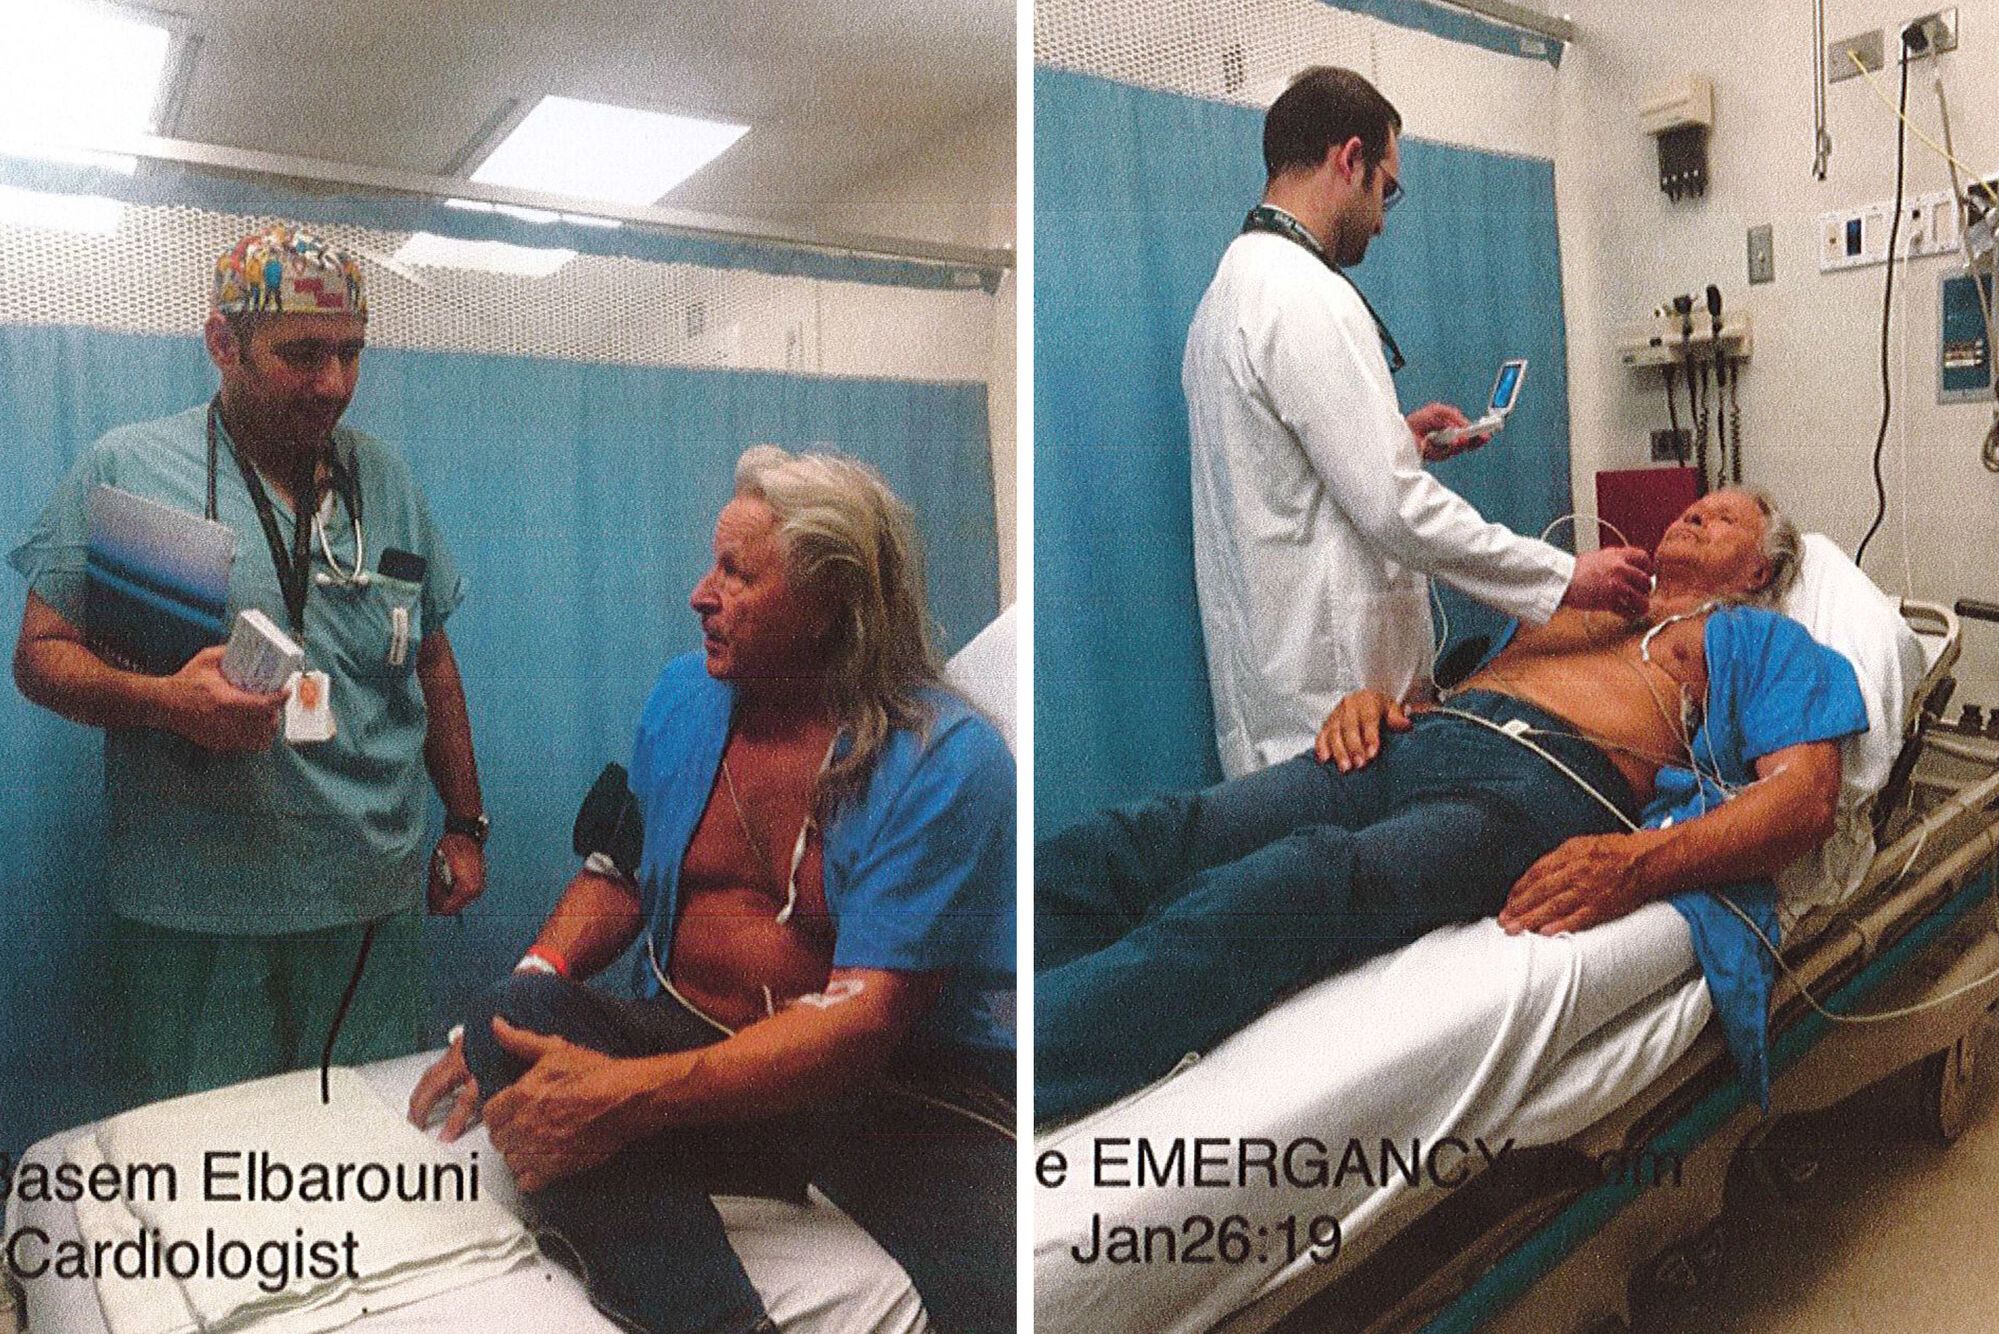 Nygard, who has an outstanding arrest warrant in the Bahamas, claimed he was too ill to travel in statements made to the Nasau court. Evidence of Nygard's alleged ill health included these photographs.